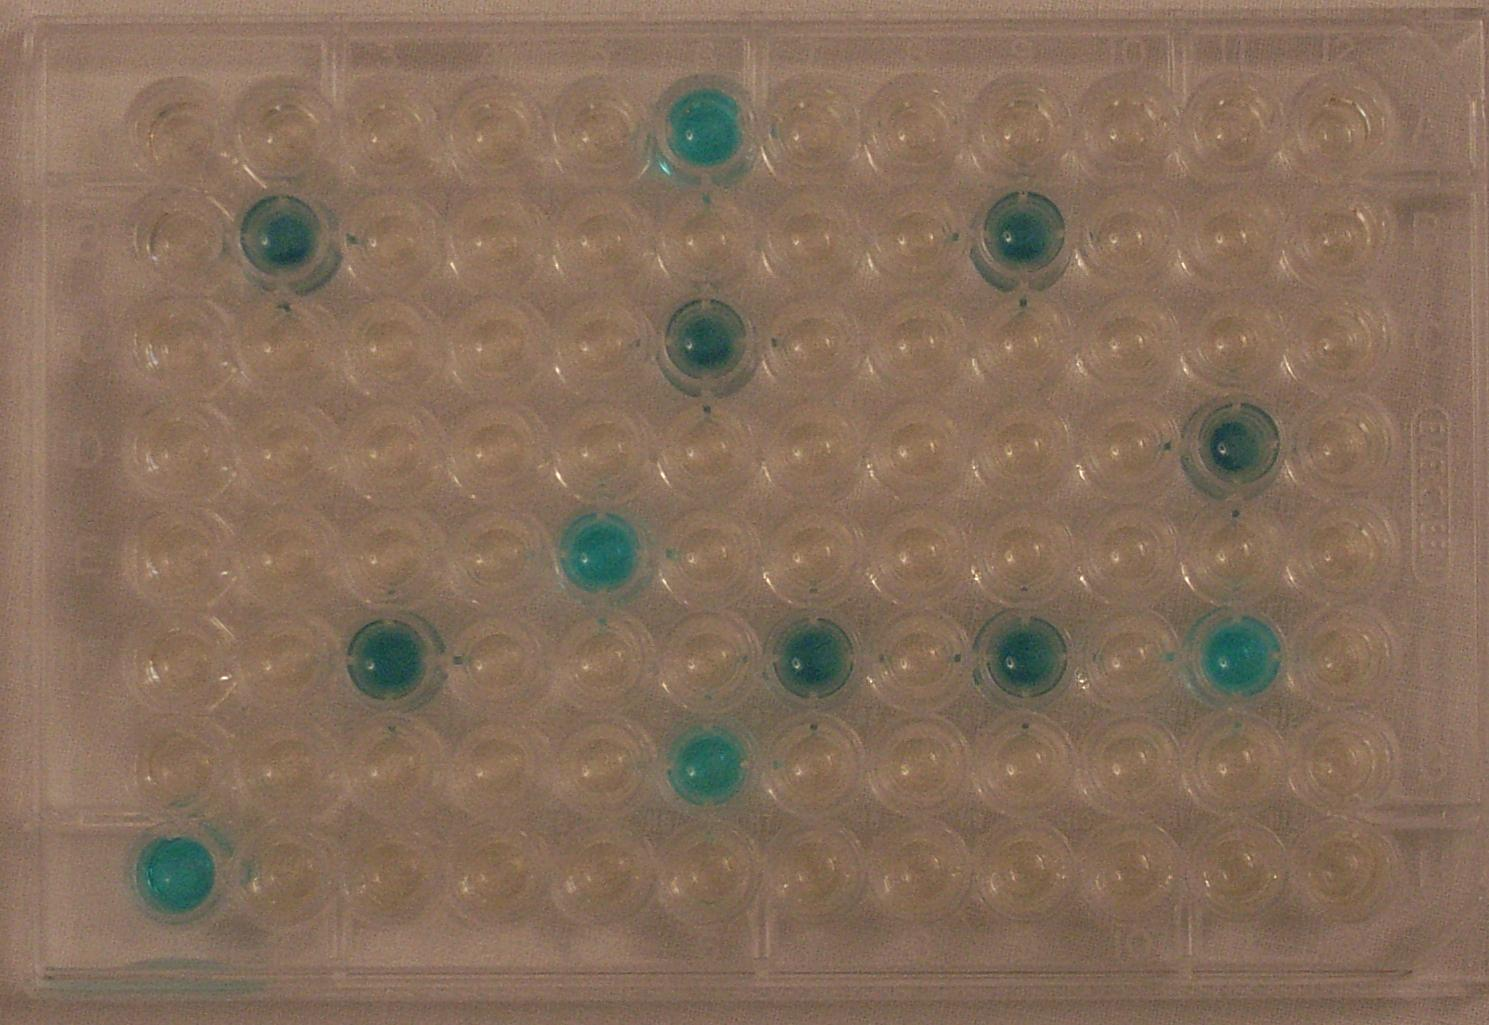 E.coli and bacterial Testing Coliplate for swiming